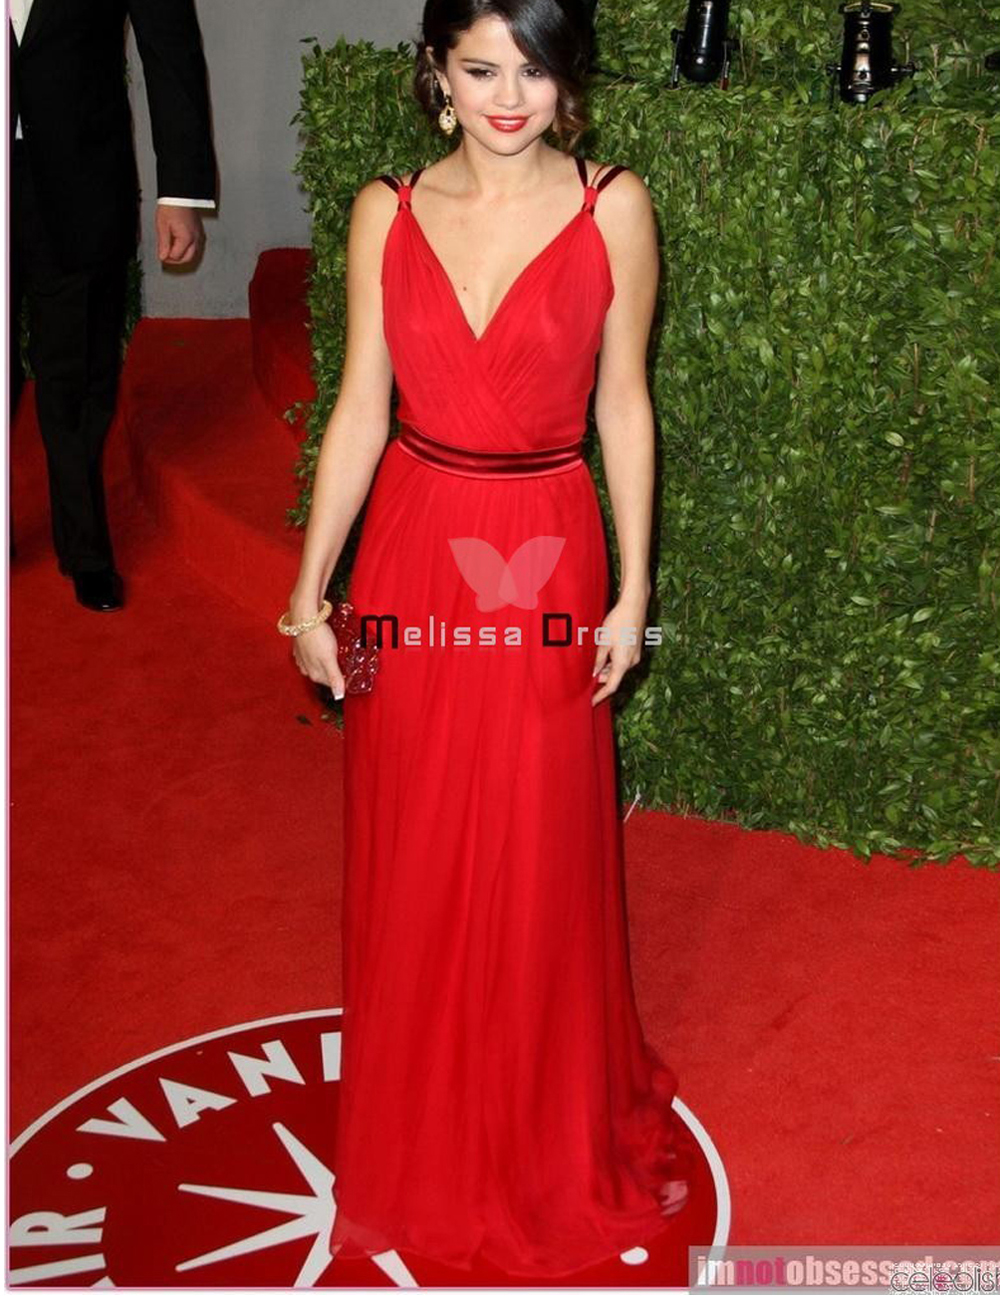 Selena Gomez Red Dress 2011 Oscars Awards Celebrity